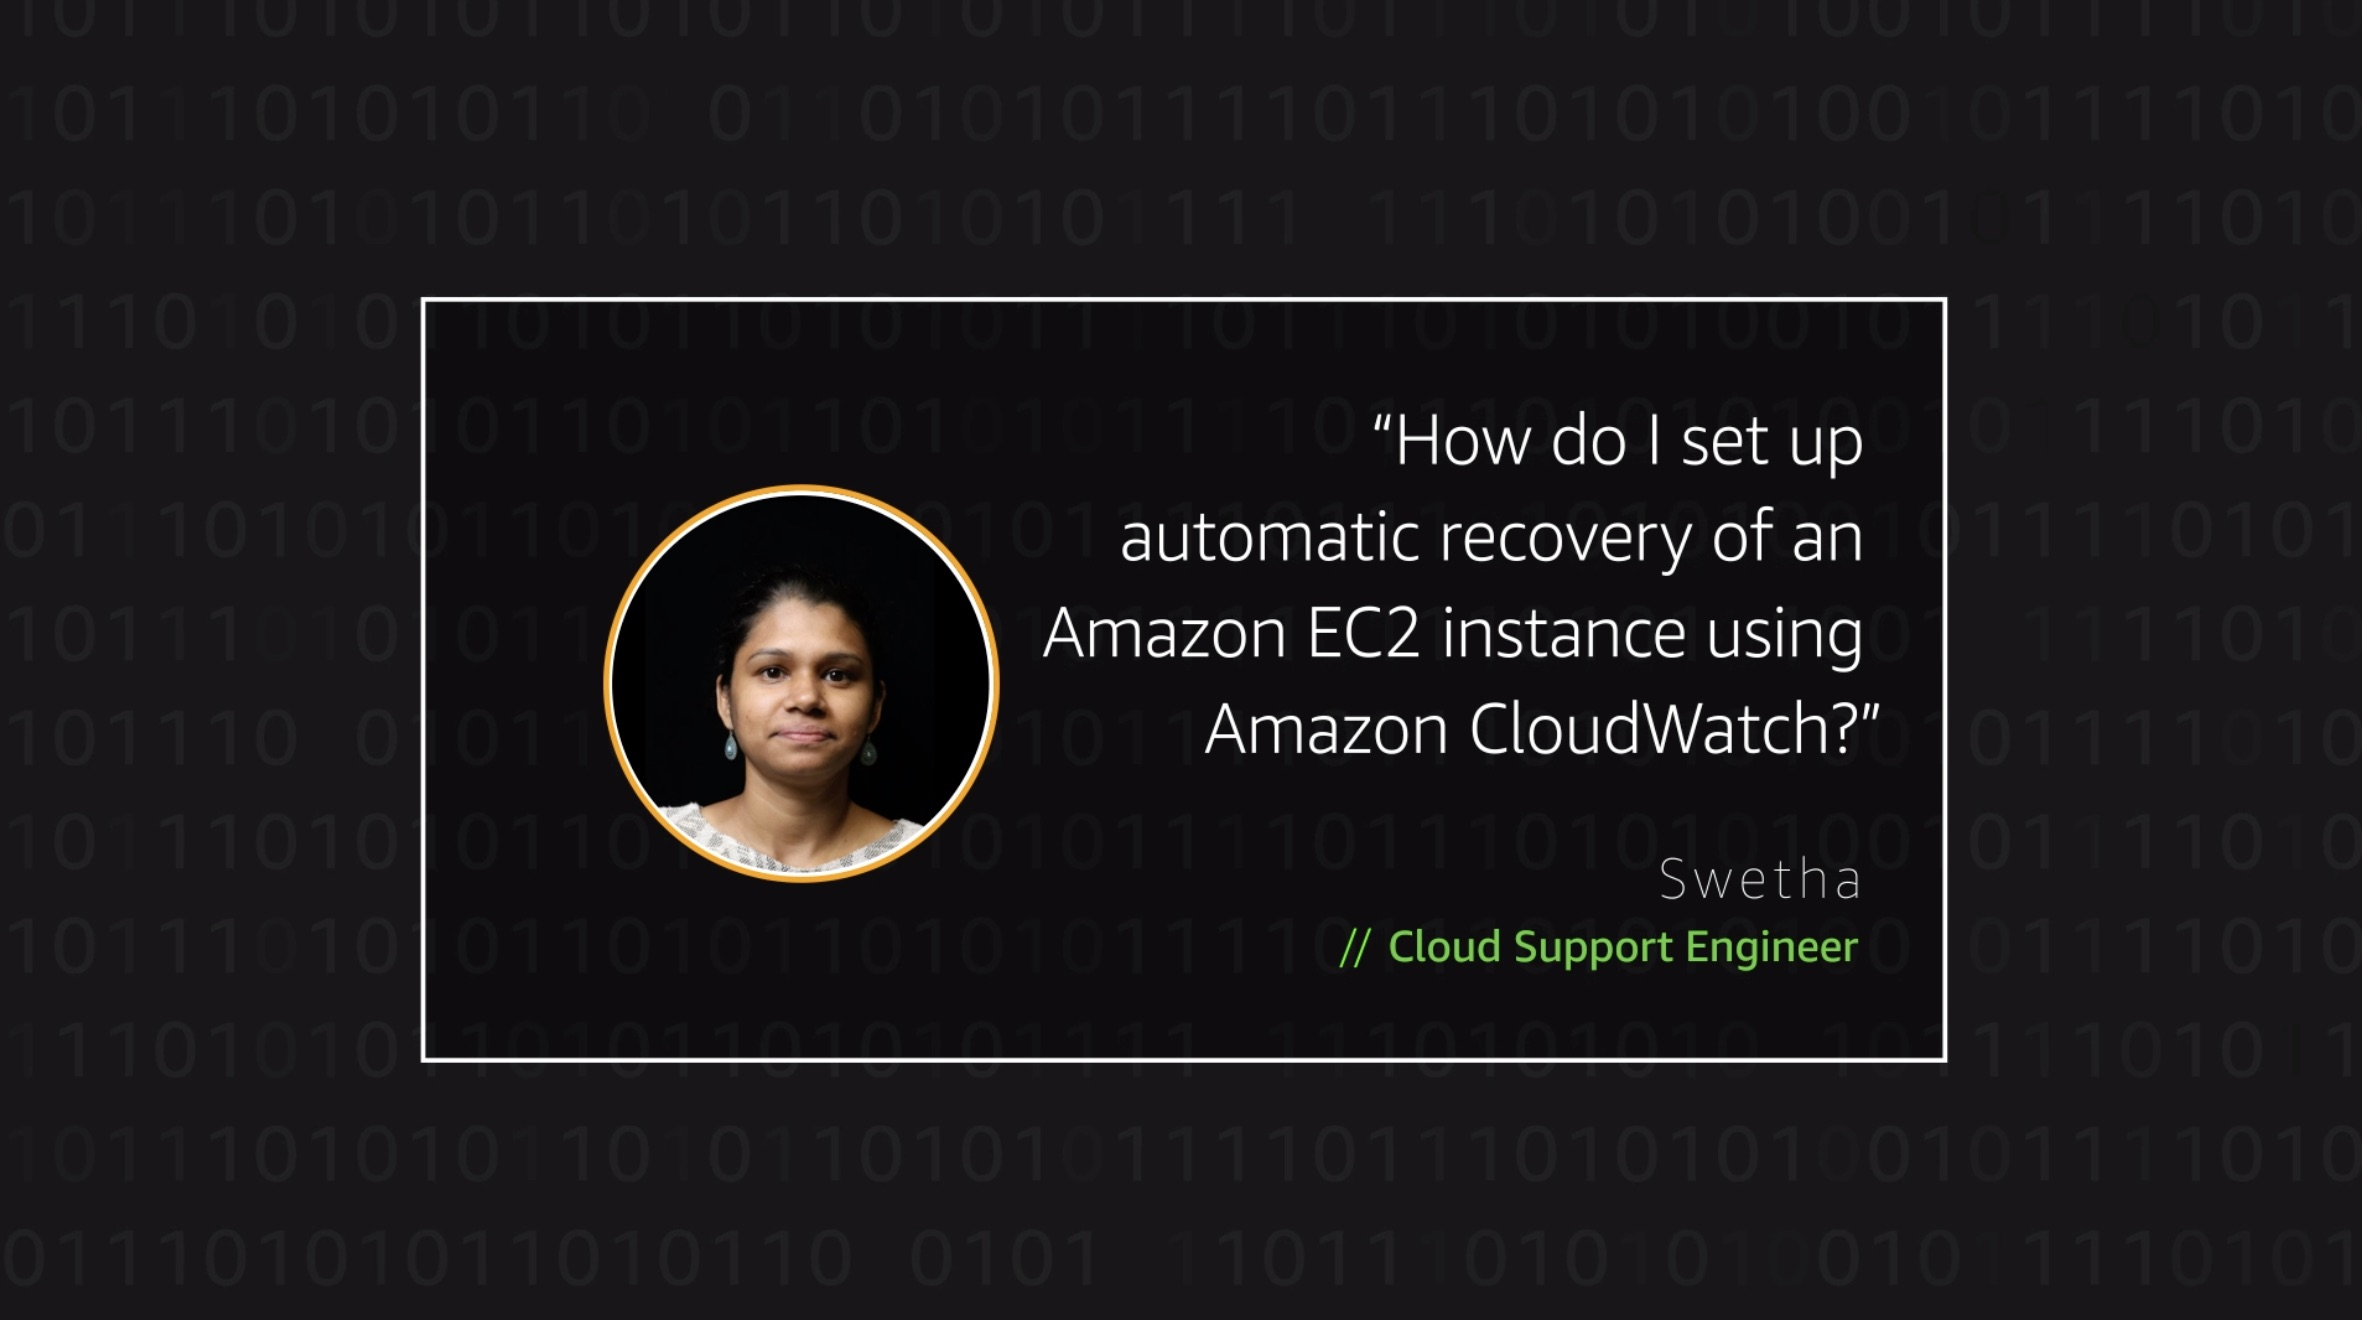 Watch Swetha's video to learn more